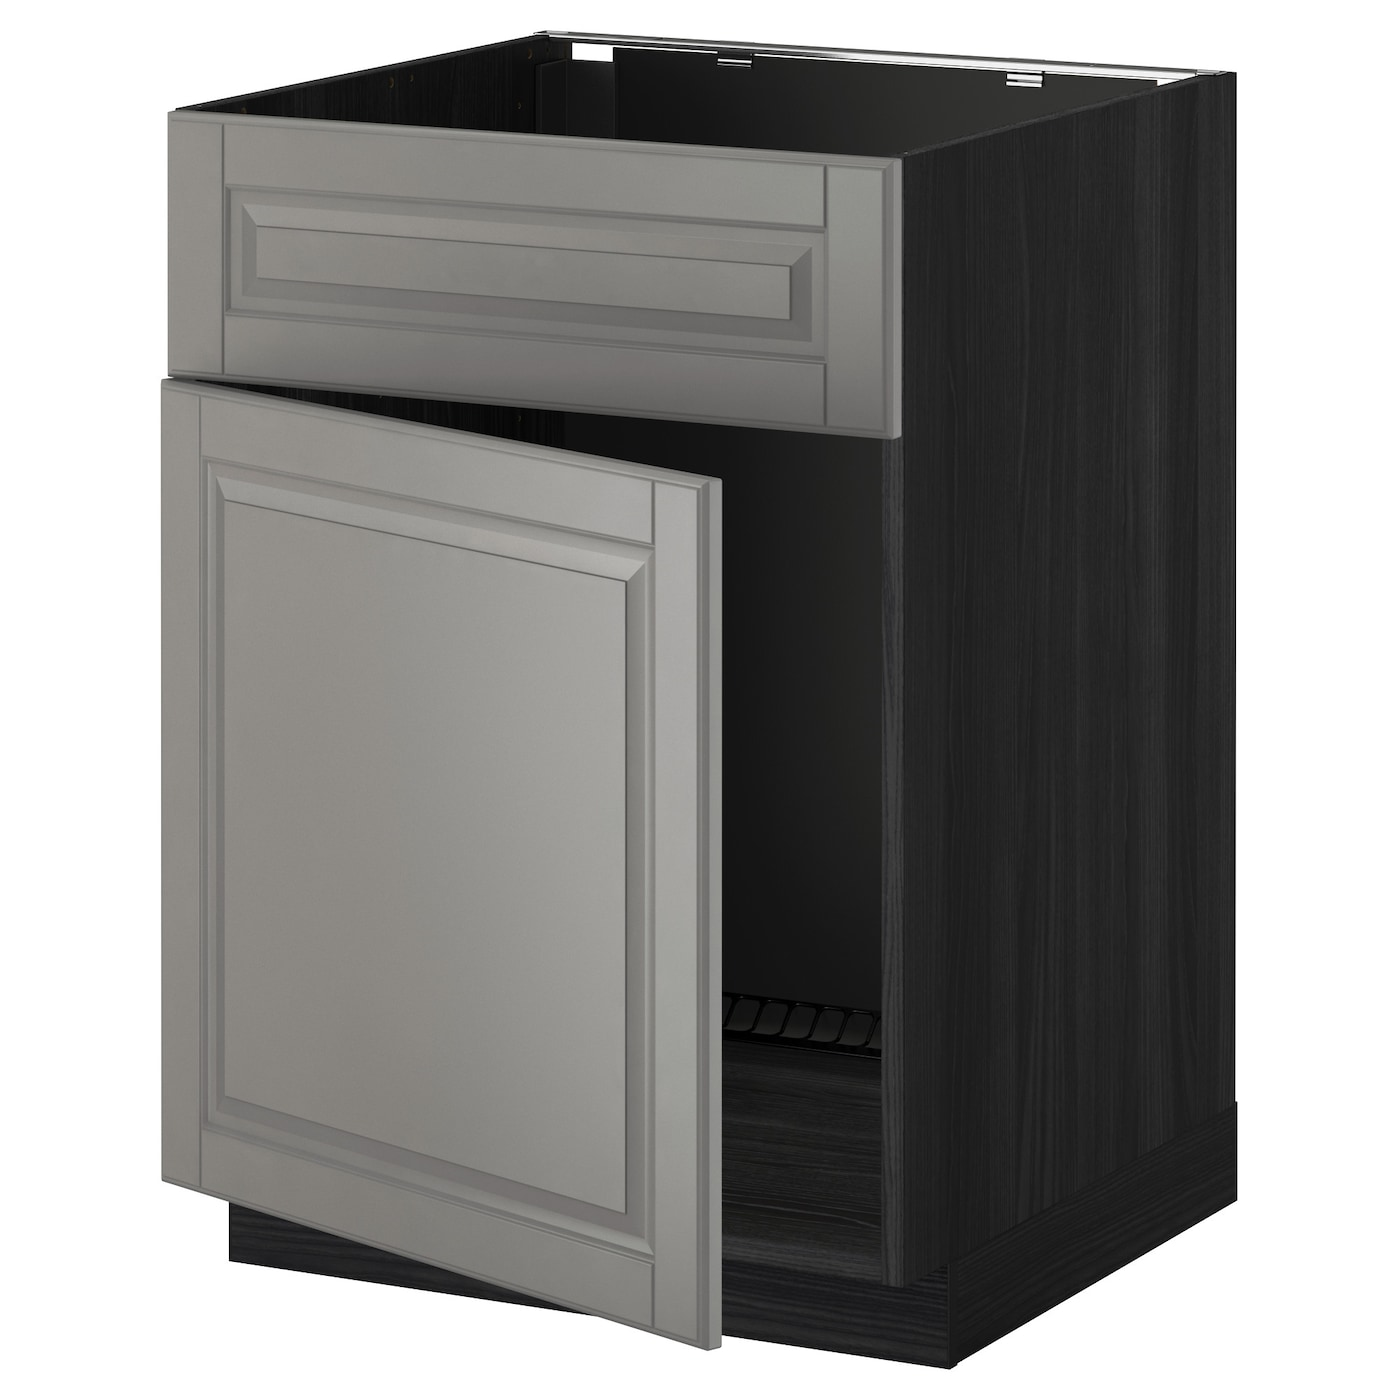 Metod base cabinet f sink w door front black bodbyn grey for Kitchen base cabinets 700mm